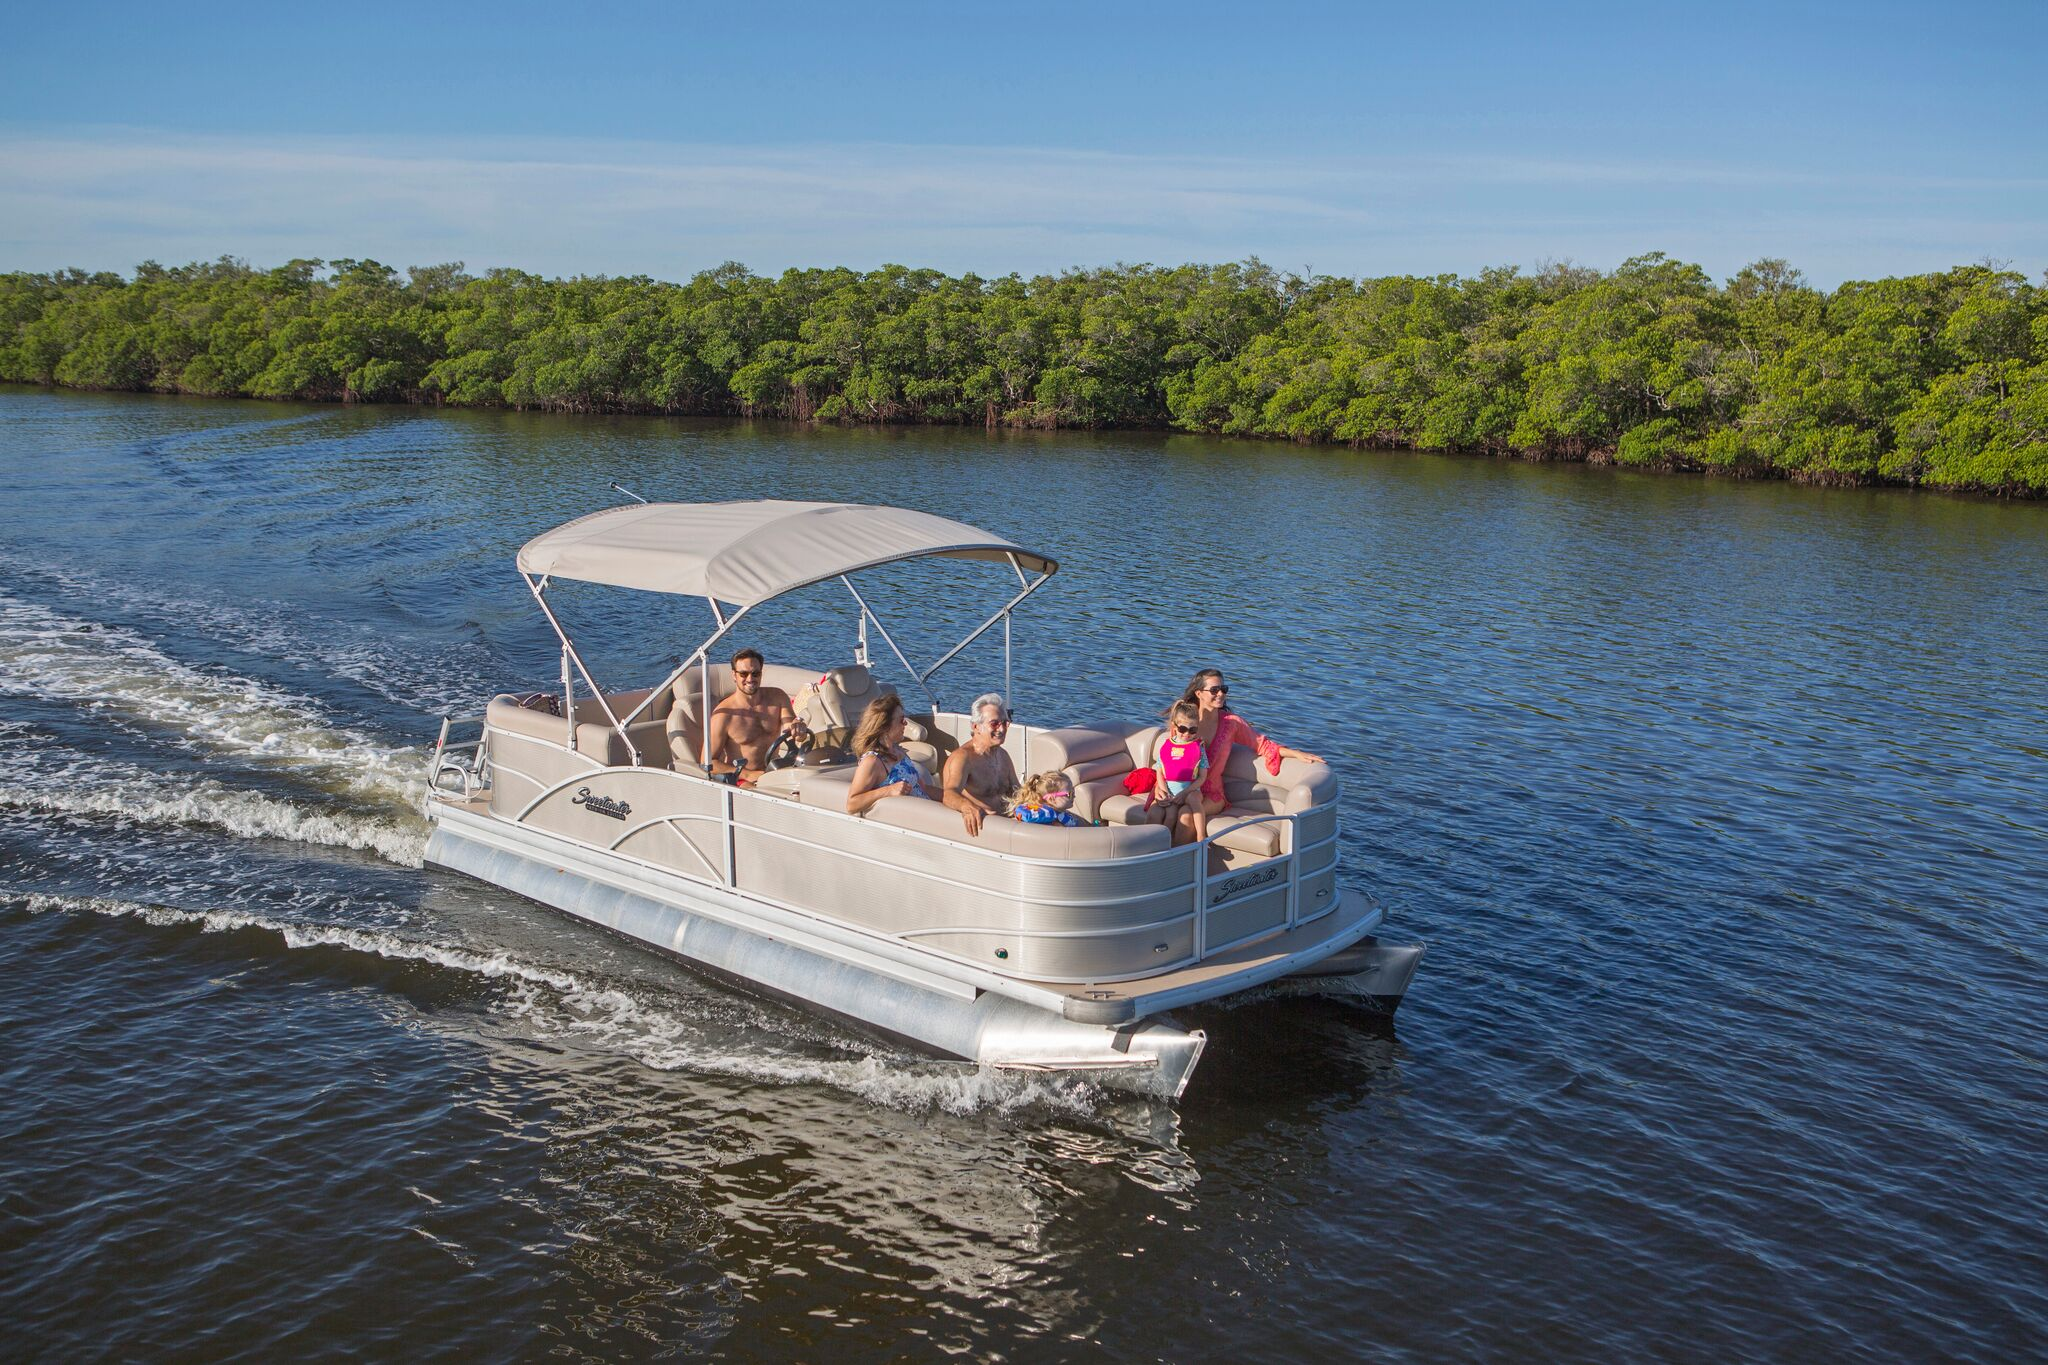 View Our Fleet at PotNets Bayside in Long Neck!